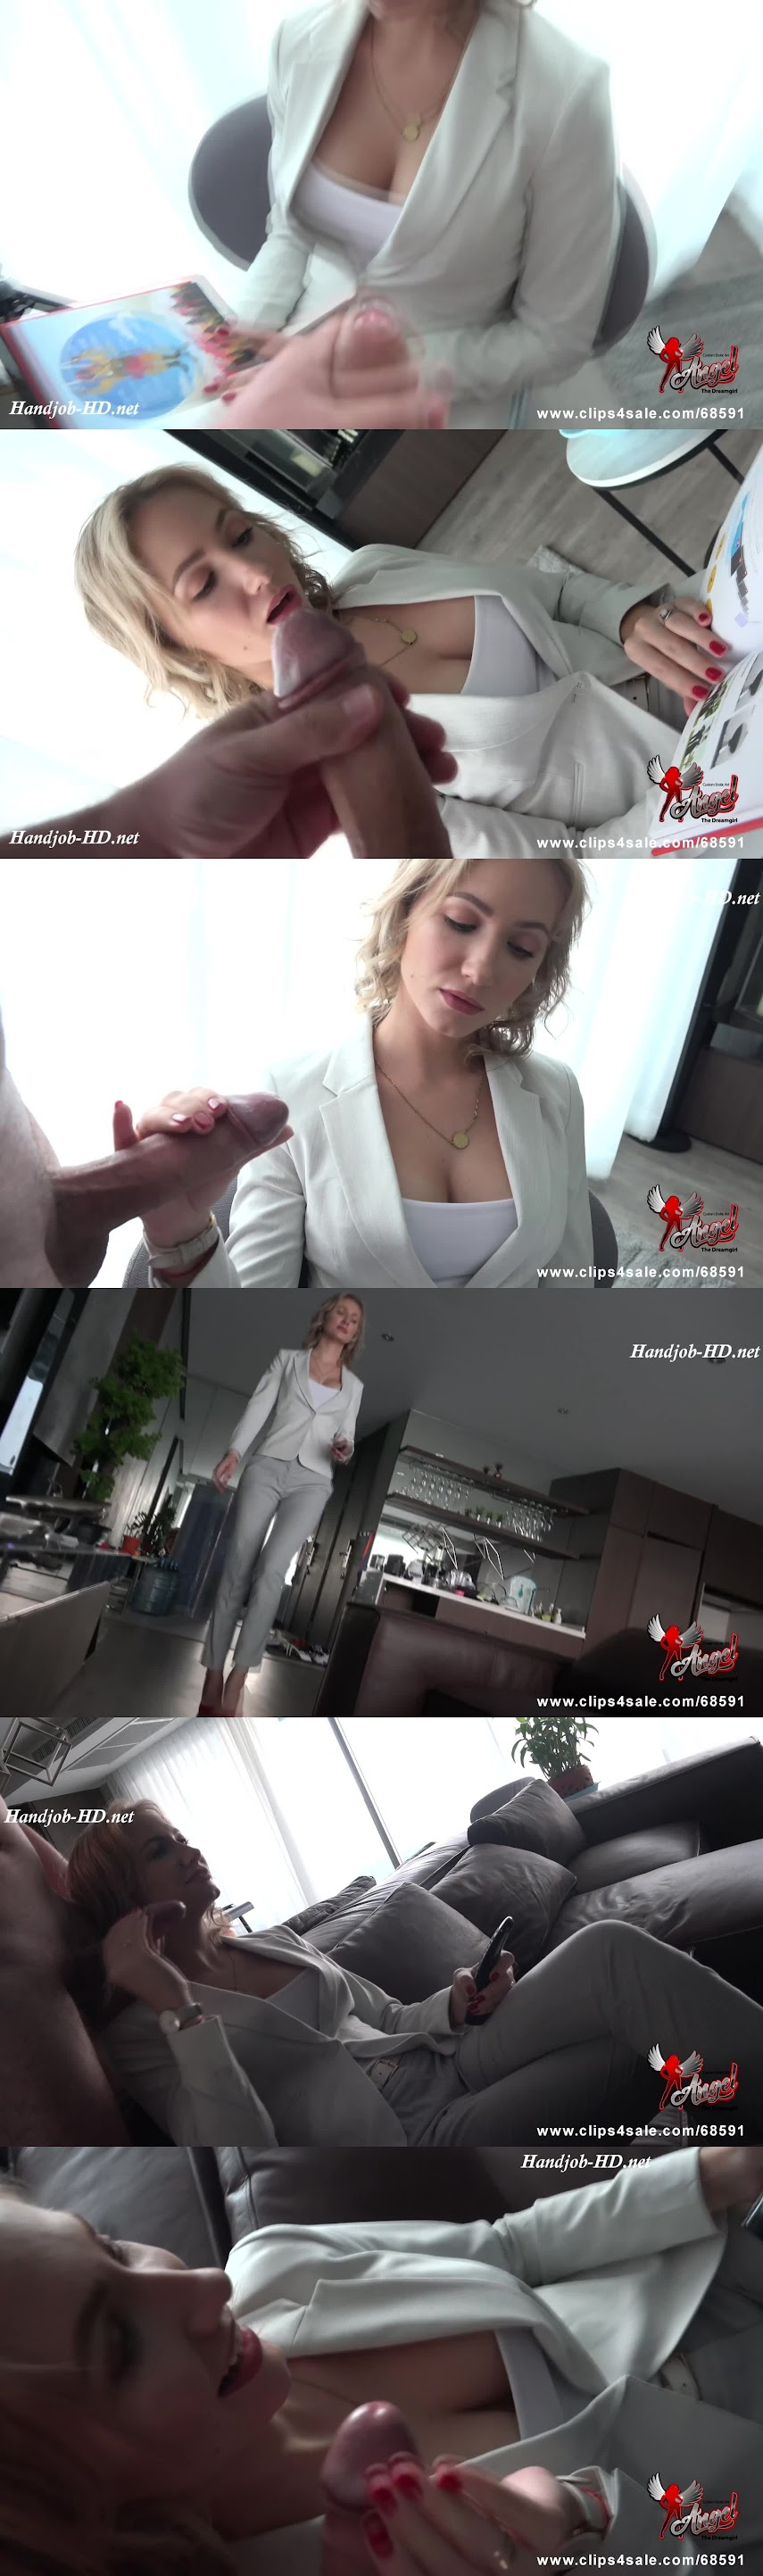 2019.09.28 Get Nuts For Me 1080p - Girlsdelta